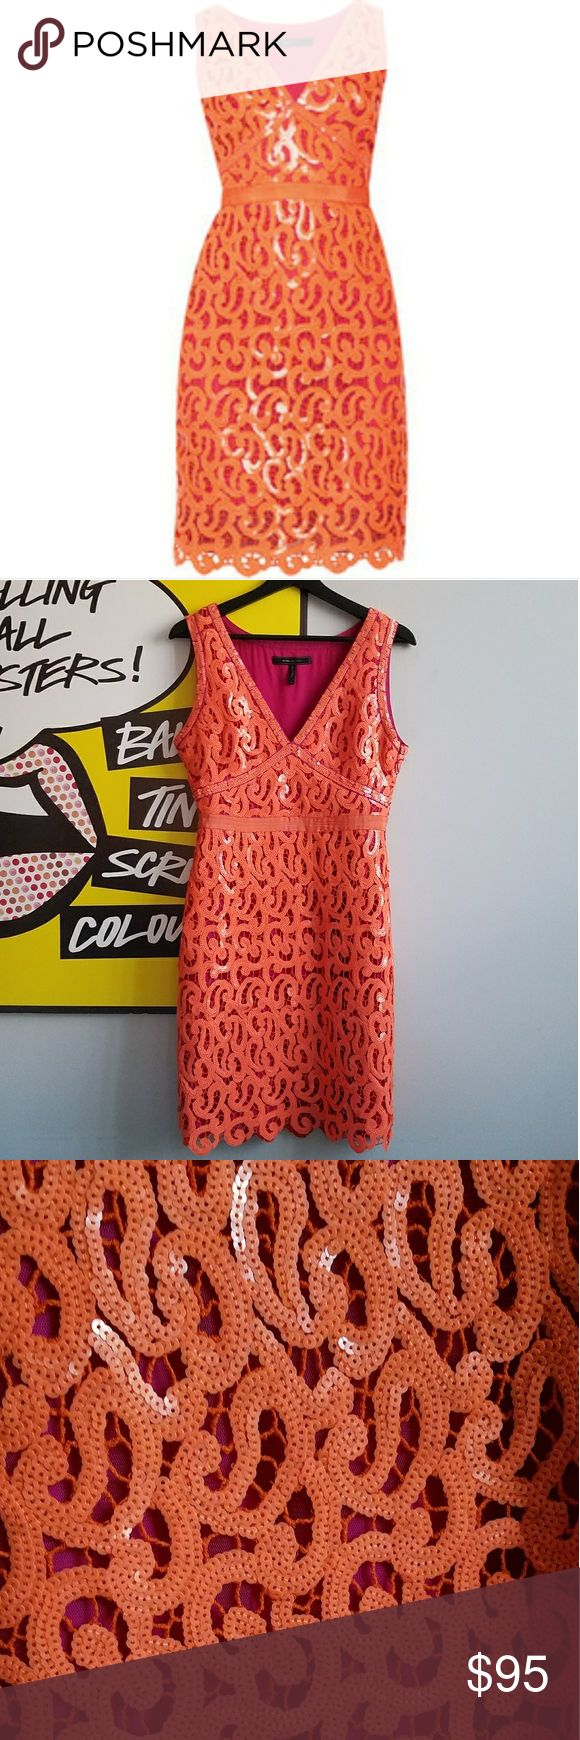 BCBG Max Azria Sequined Gabrielle Cocktail Dress Sparkly, fitted, and bright = your holiday party dress! Bright orange sequins overlaid on a fuschia fabric. Worn twice, in great condition, all sequins intact!! BCBGMaxAzria Dresses Mini